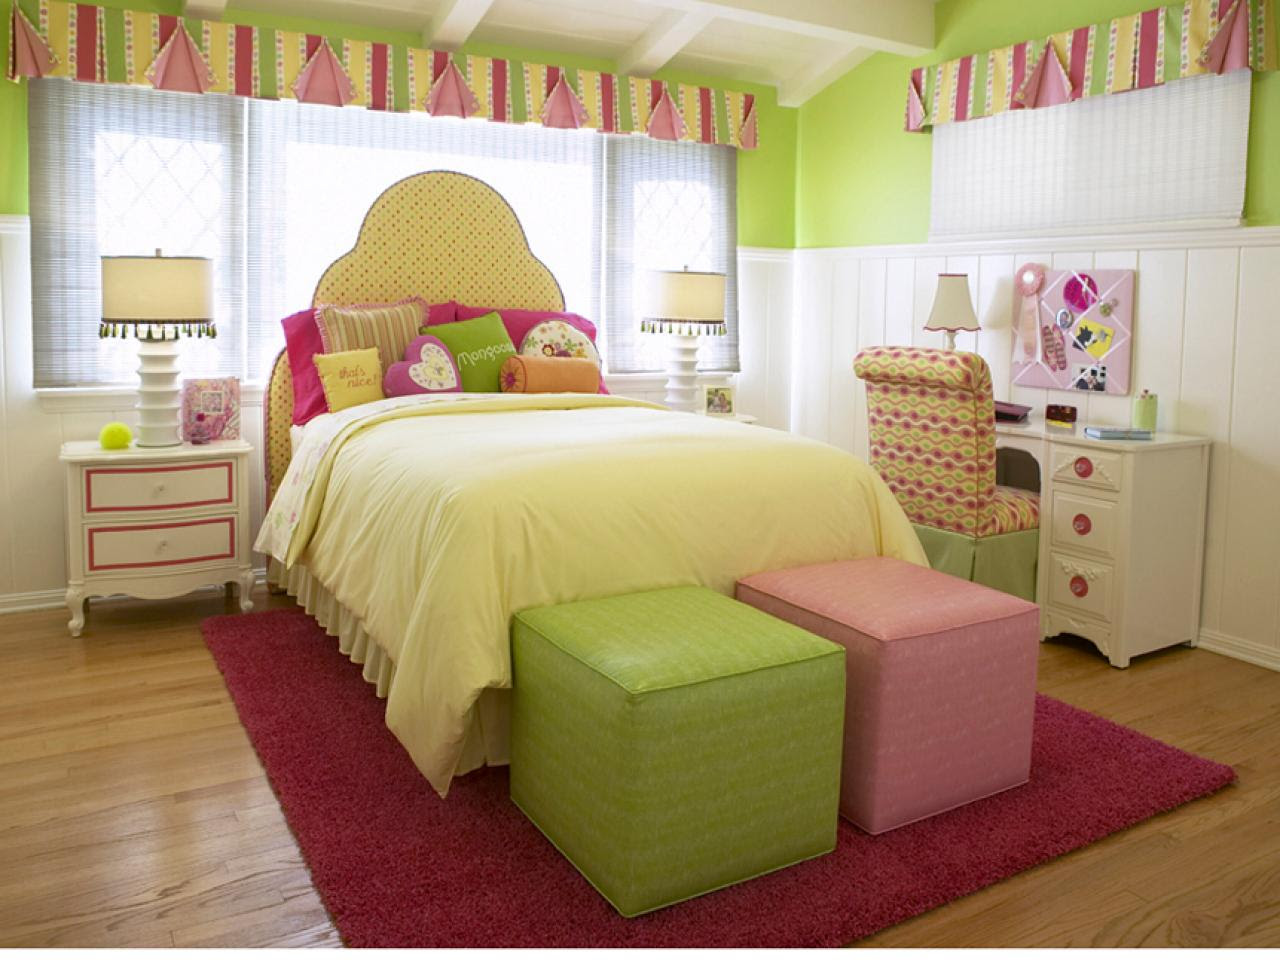 10 Girly Teen Bedrooms  Kids Room Ideas for Playroom, Bedroom, Bathroom  HGTV